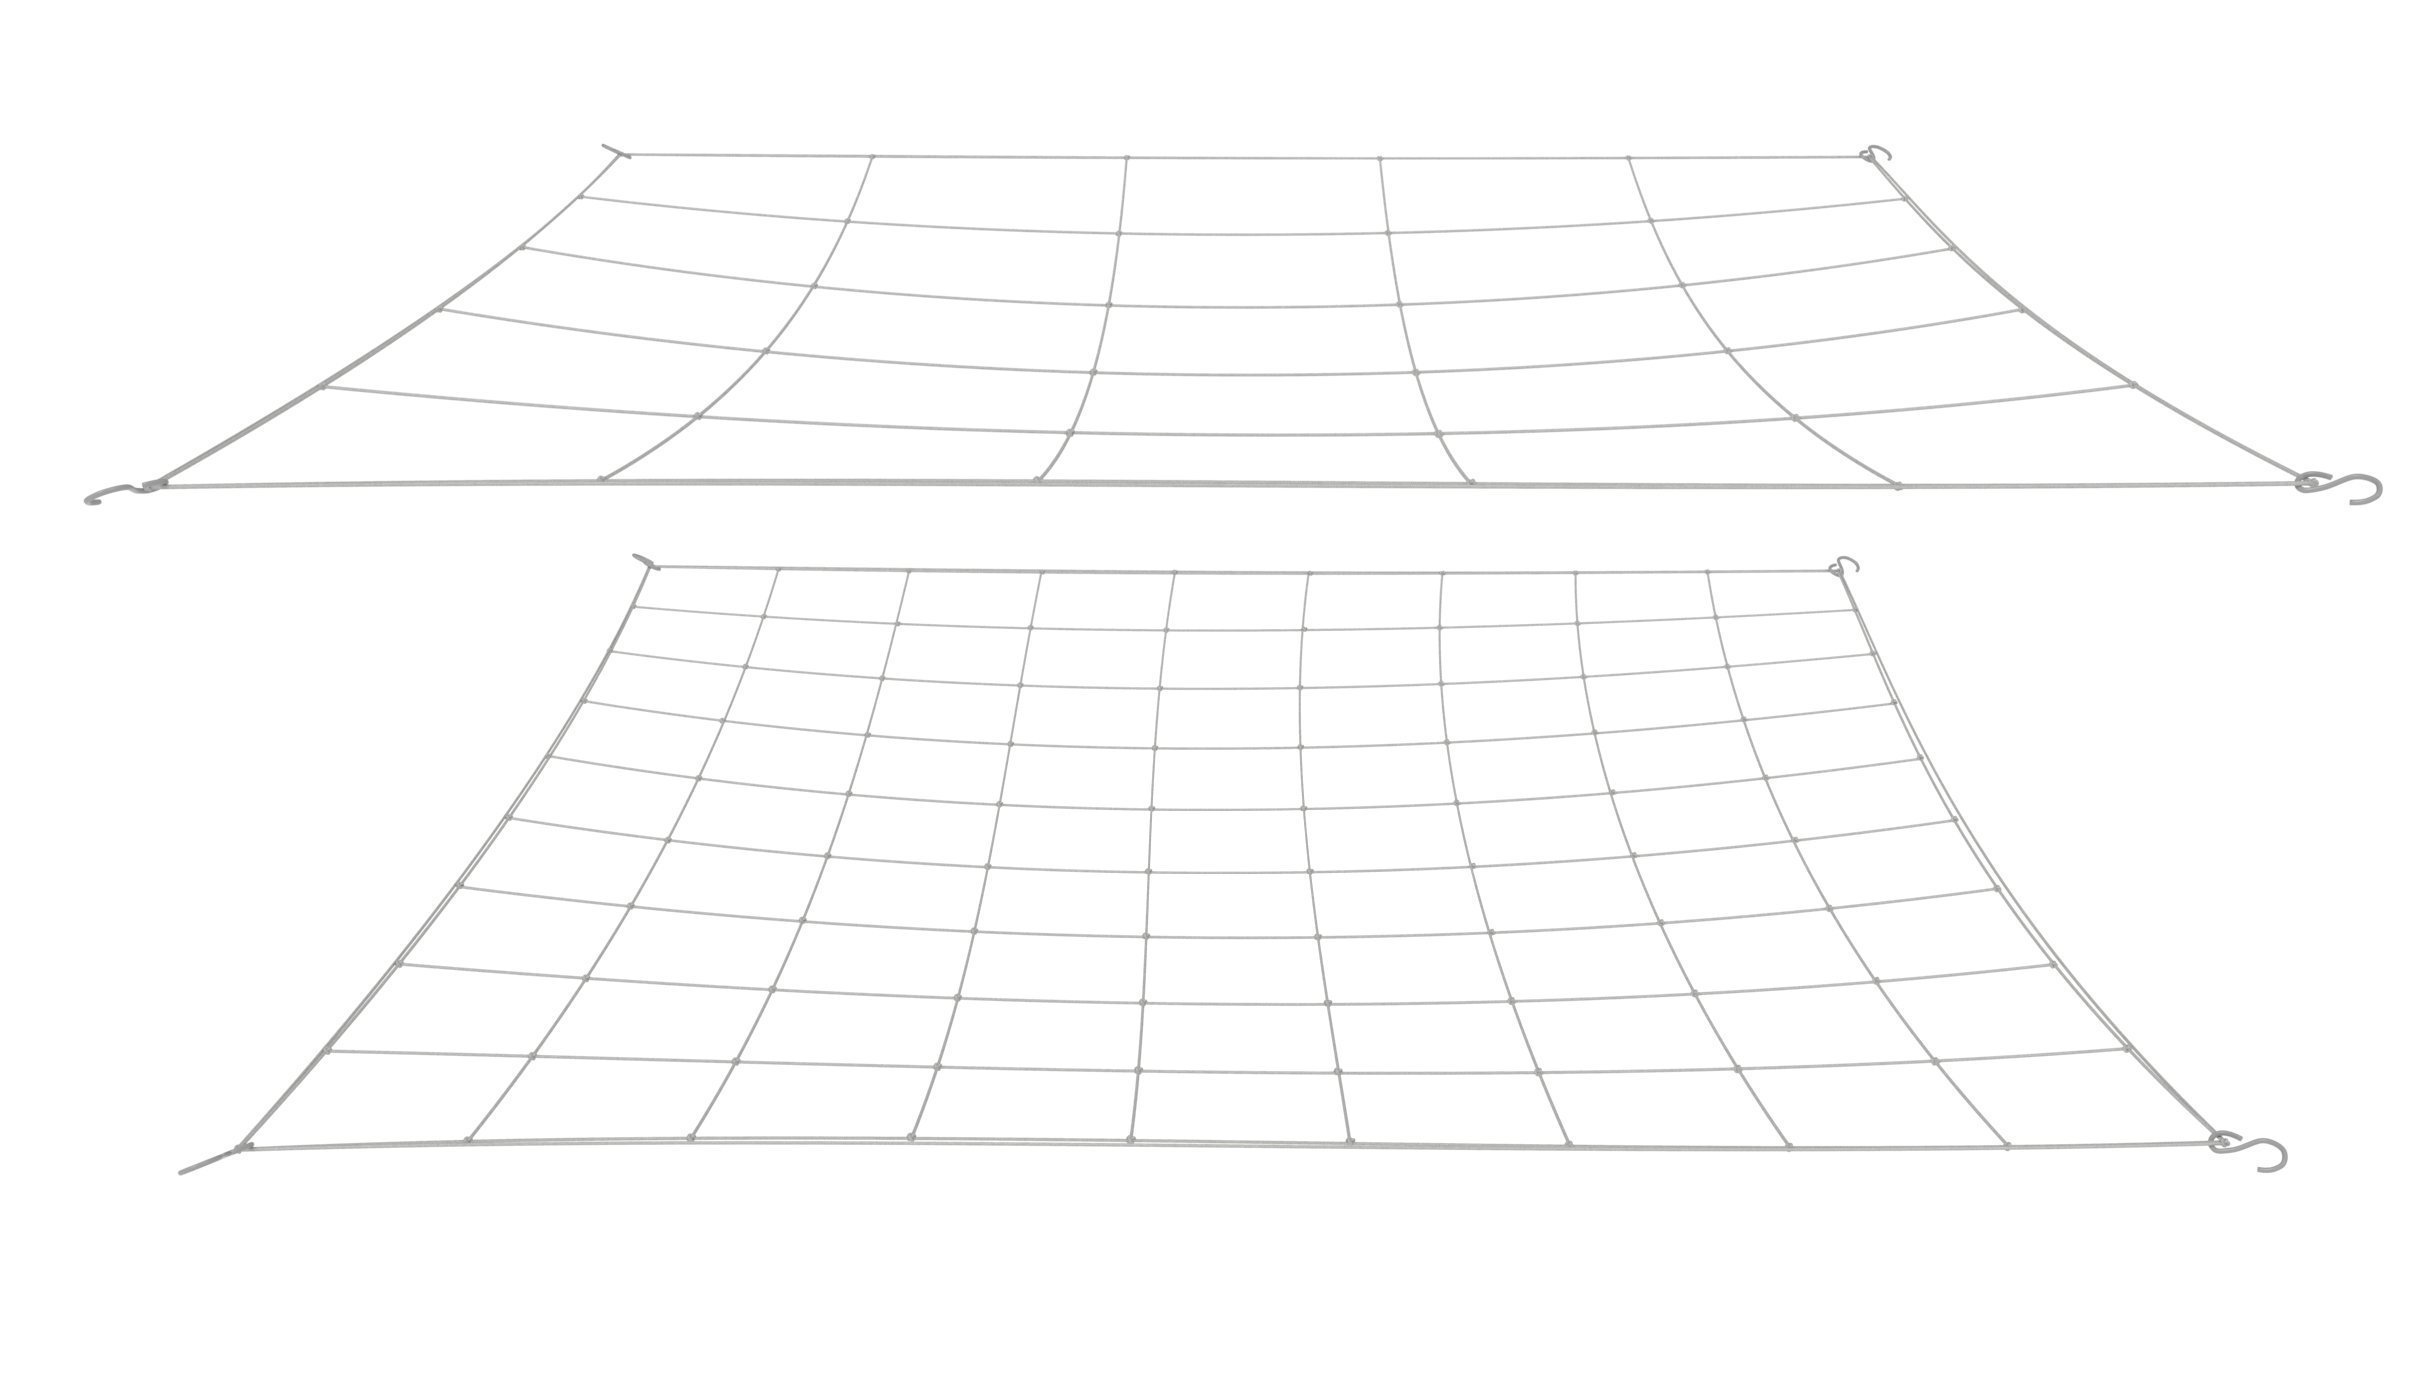 Stretchy Nets Grower Flexible Trellis net for Grow Tents